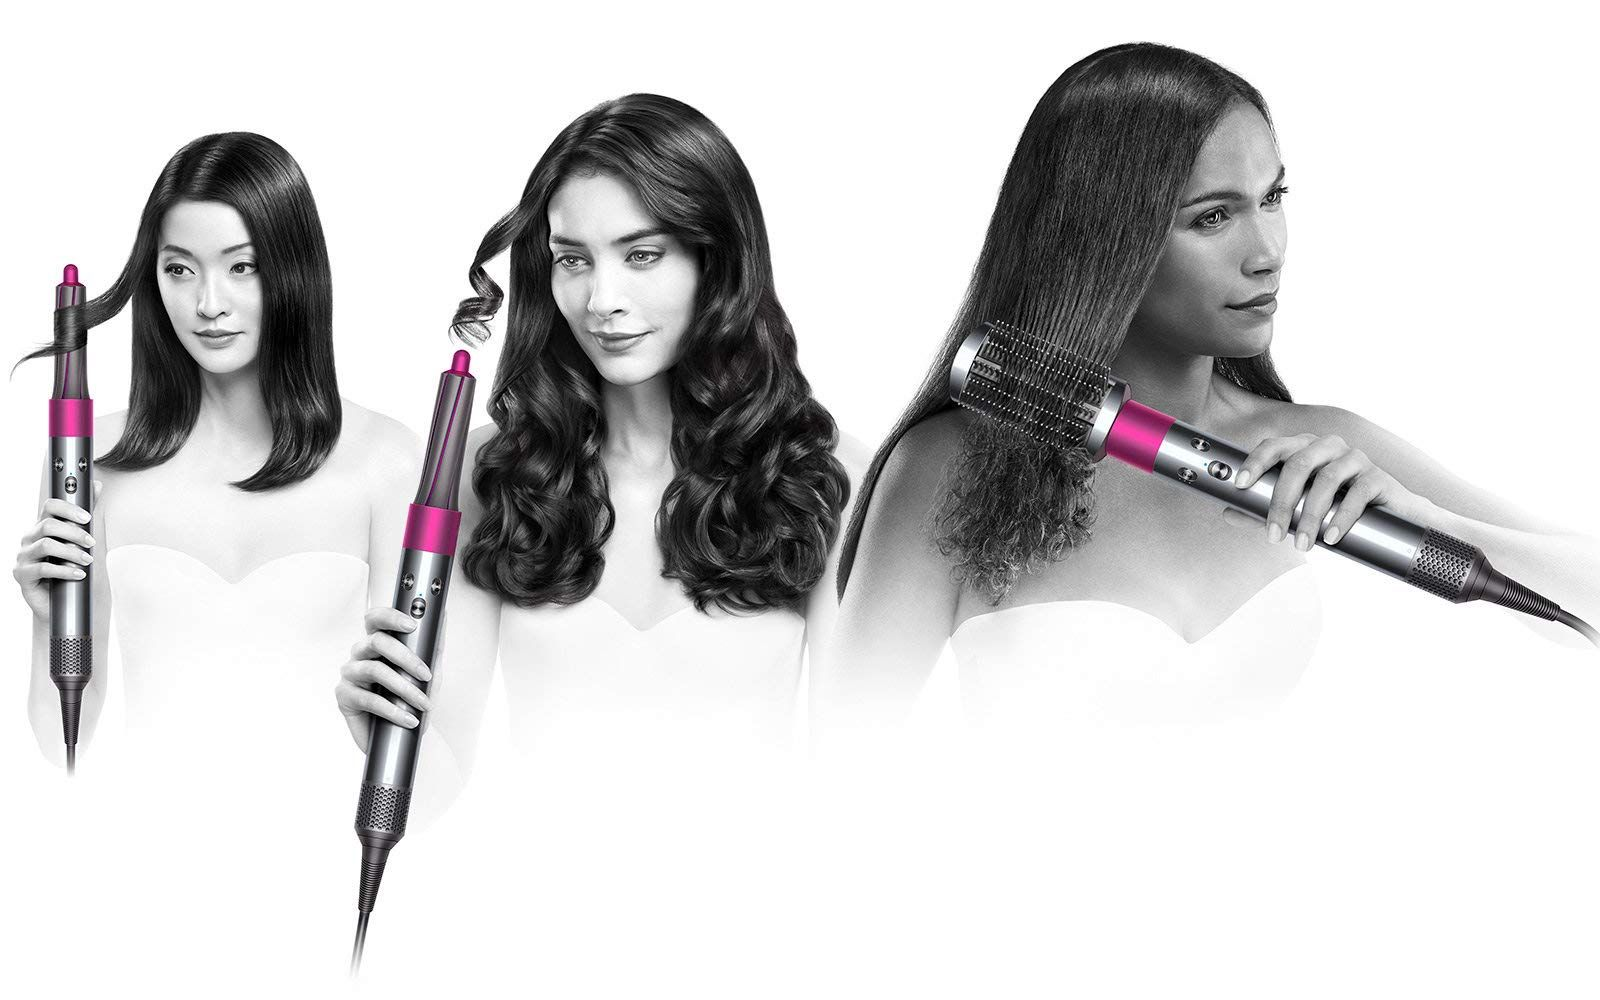 4. Dyson Airwrap Complete Hair Styling Set